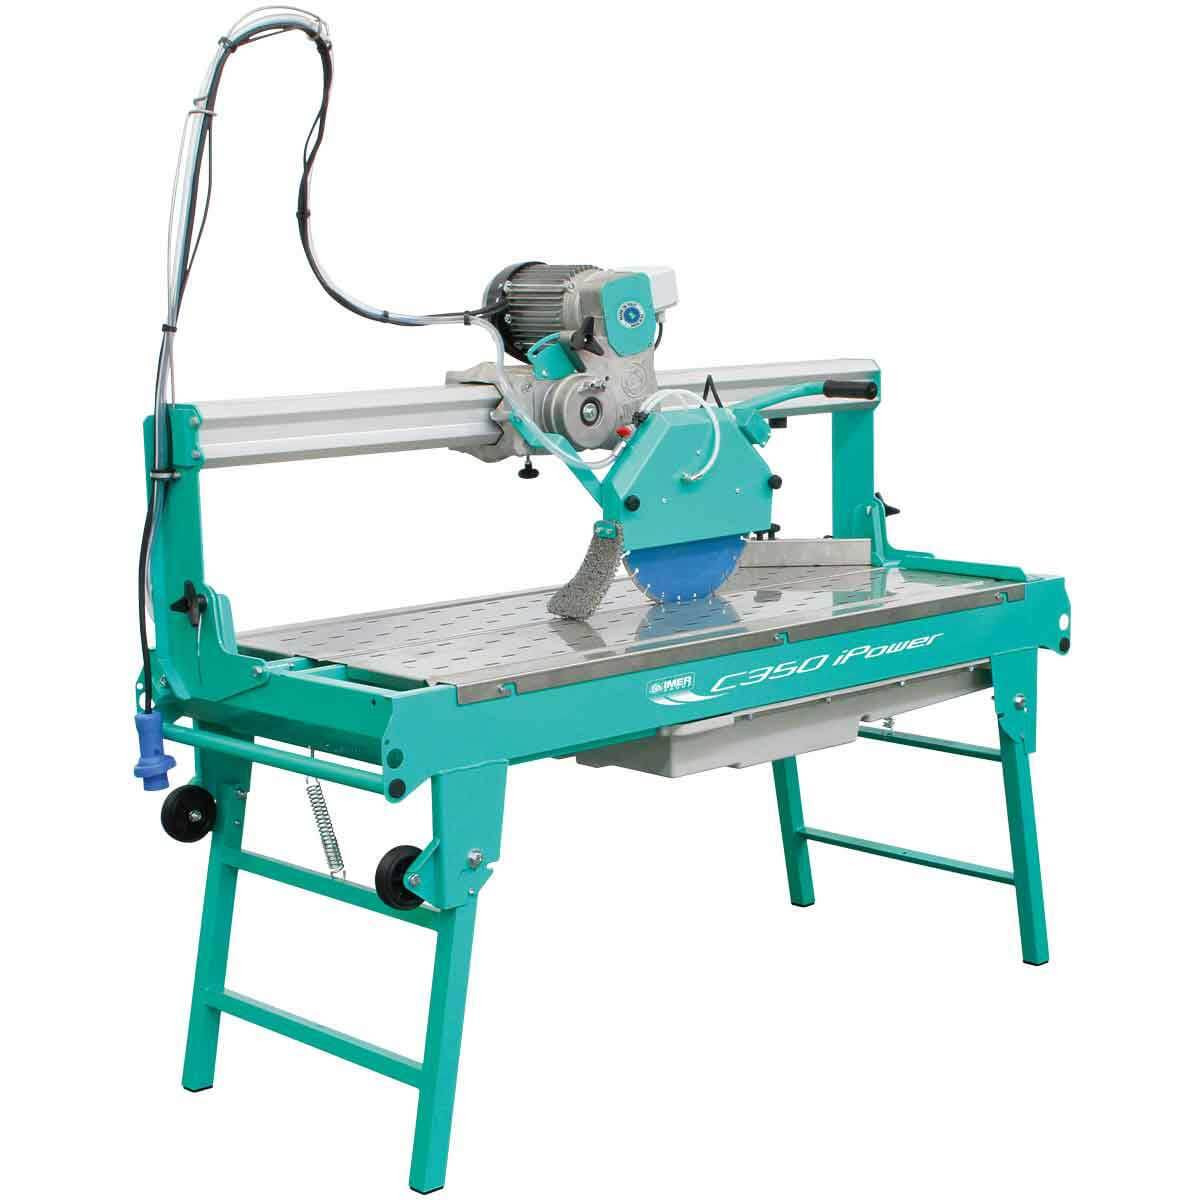 Imer Combicut 350/1200 14 inch Stone and Paver Saw